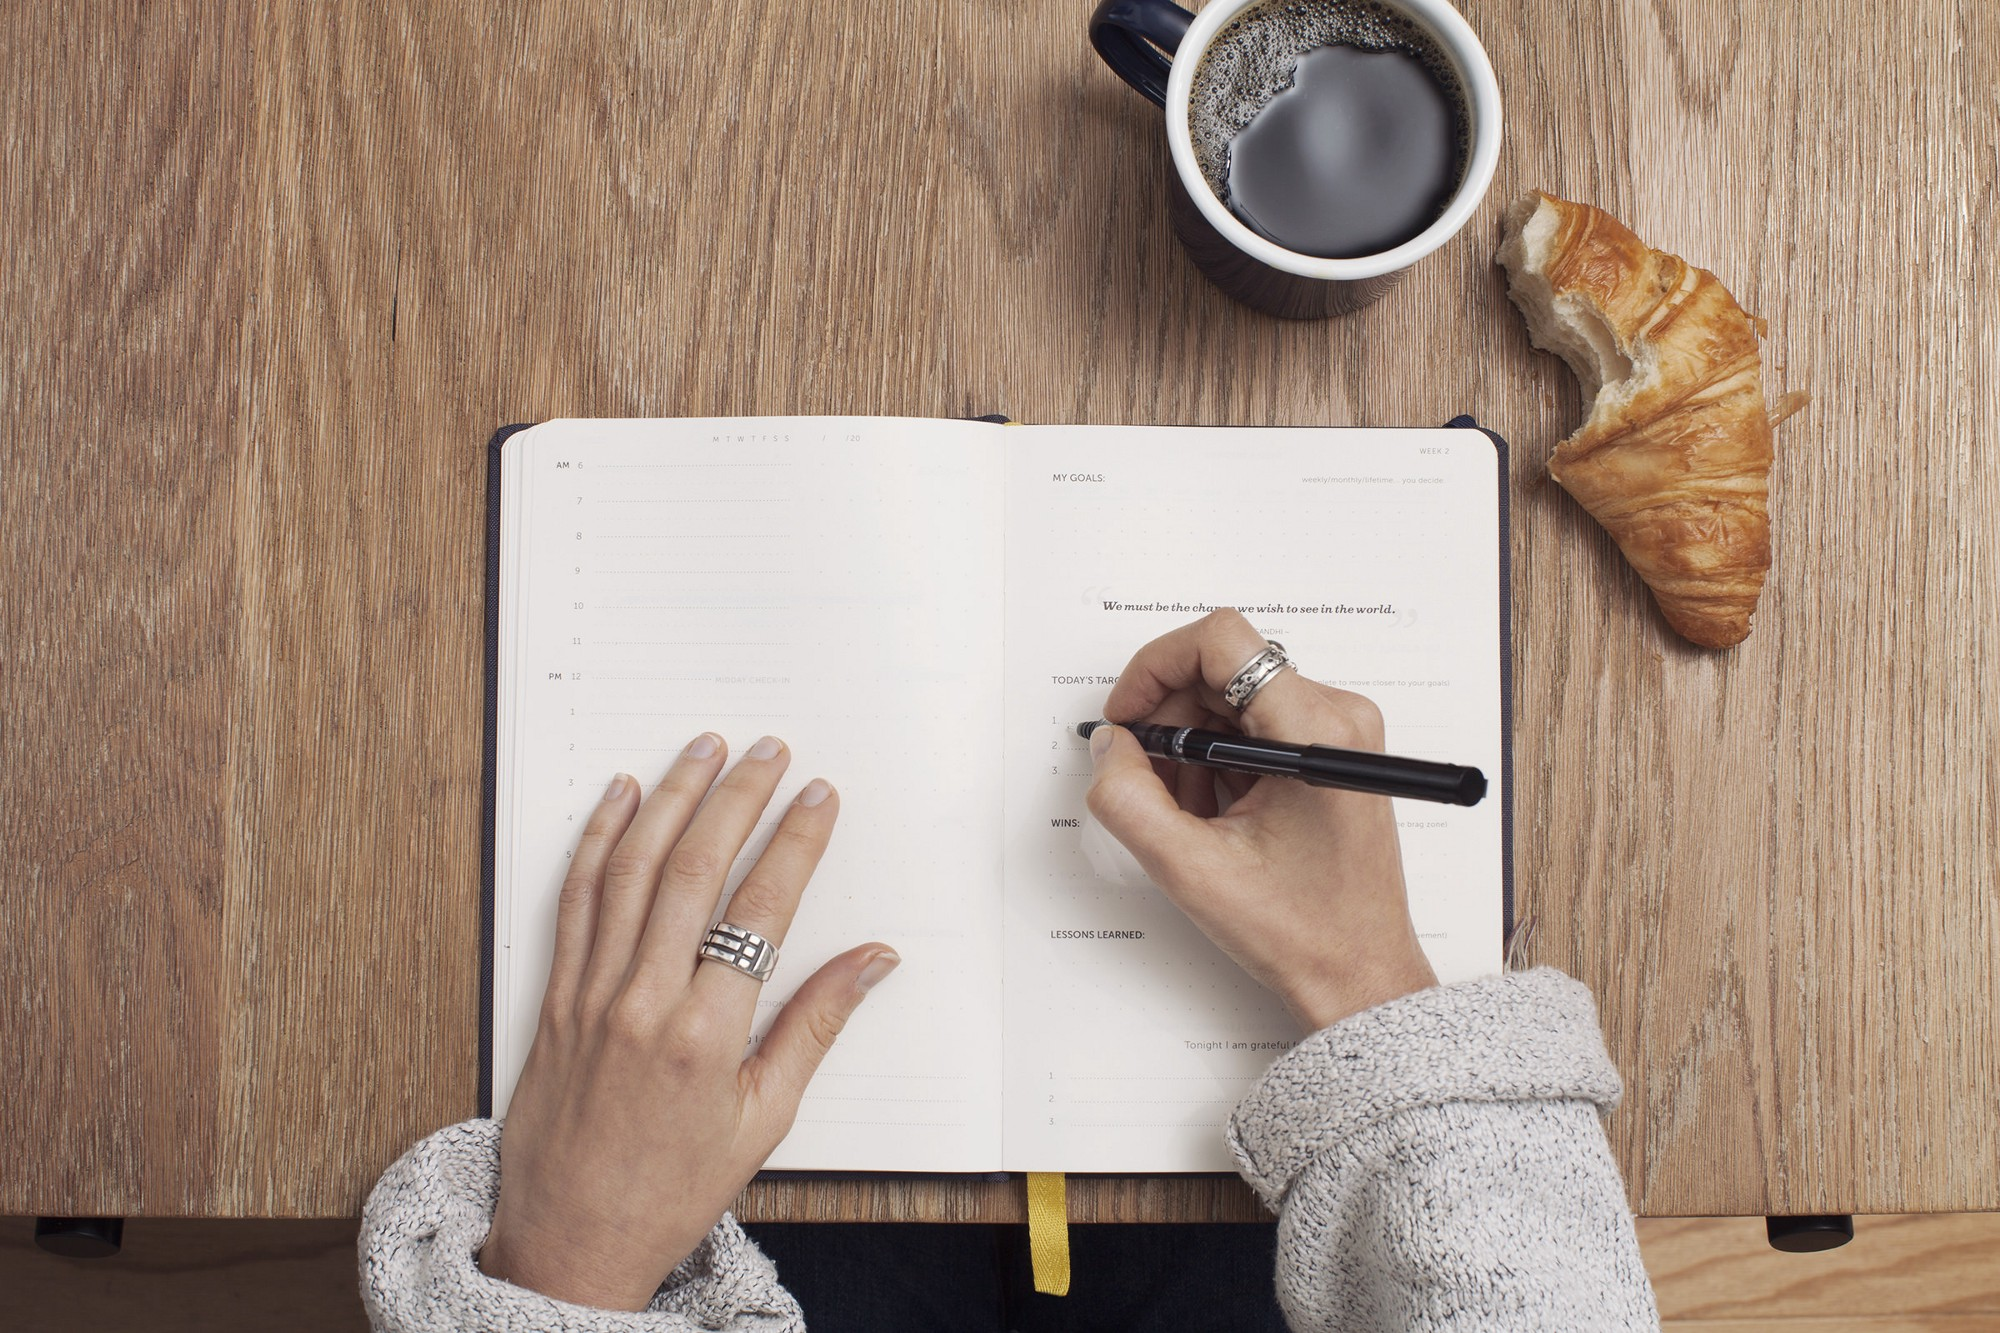 3 Minutes, That's All It Takes to Get Better At Writing